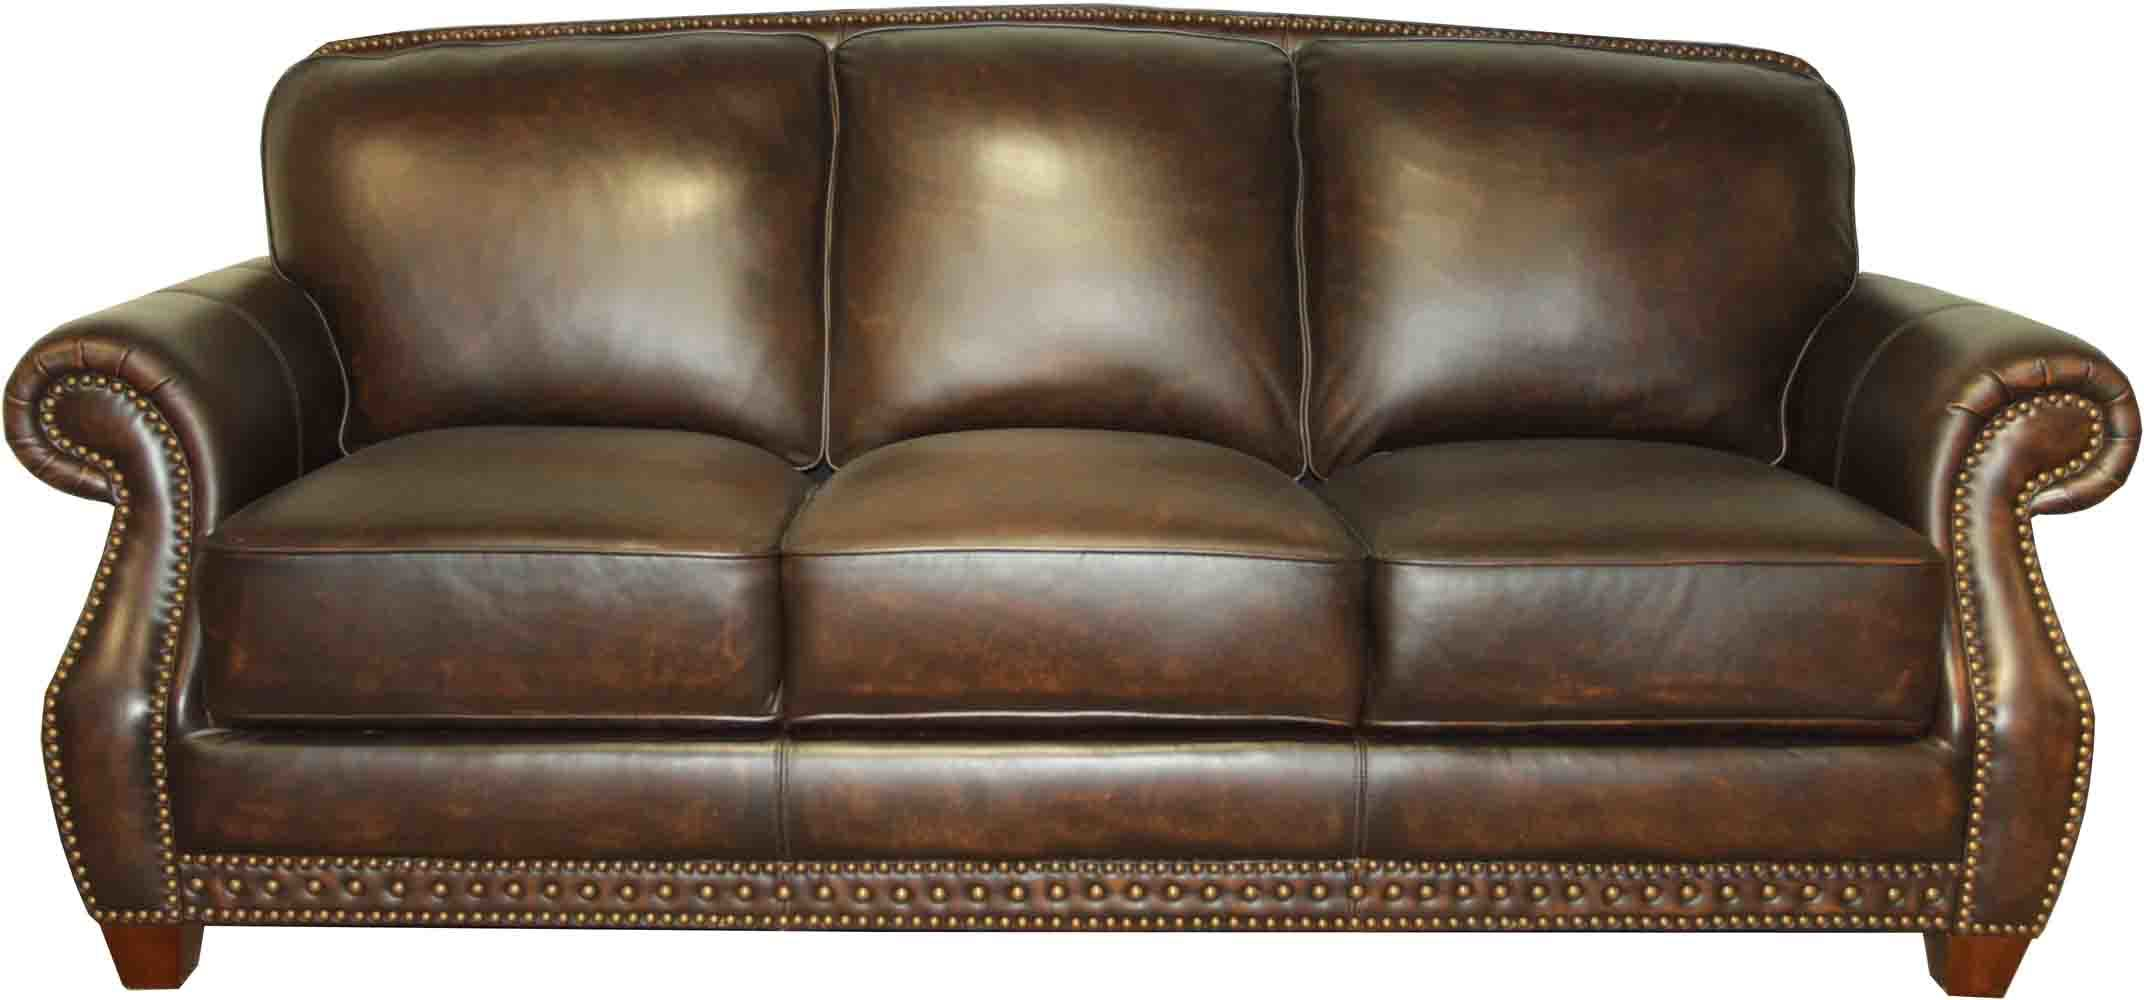 China leather sofa cm5002 china hand rub leather sofa for Leather furniture